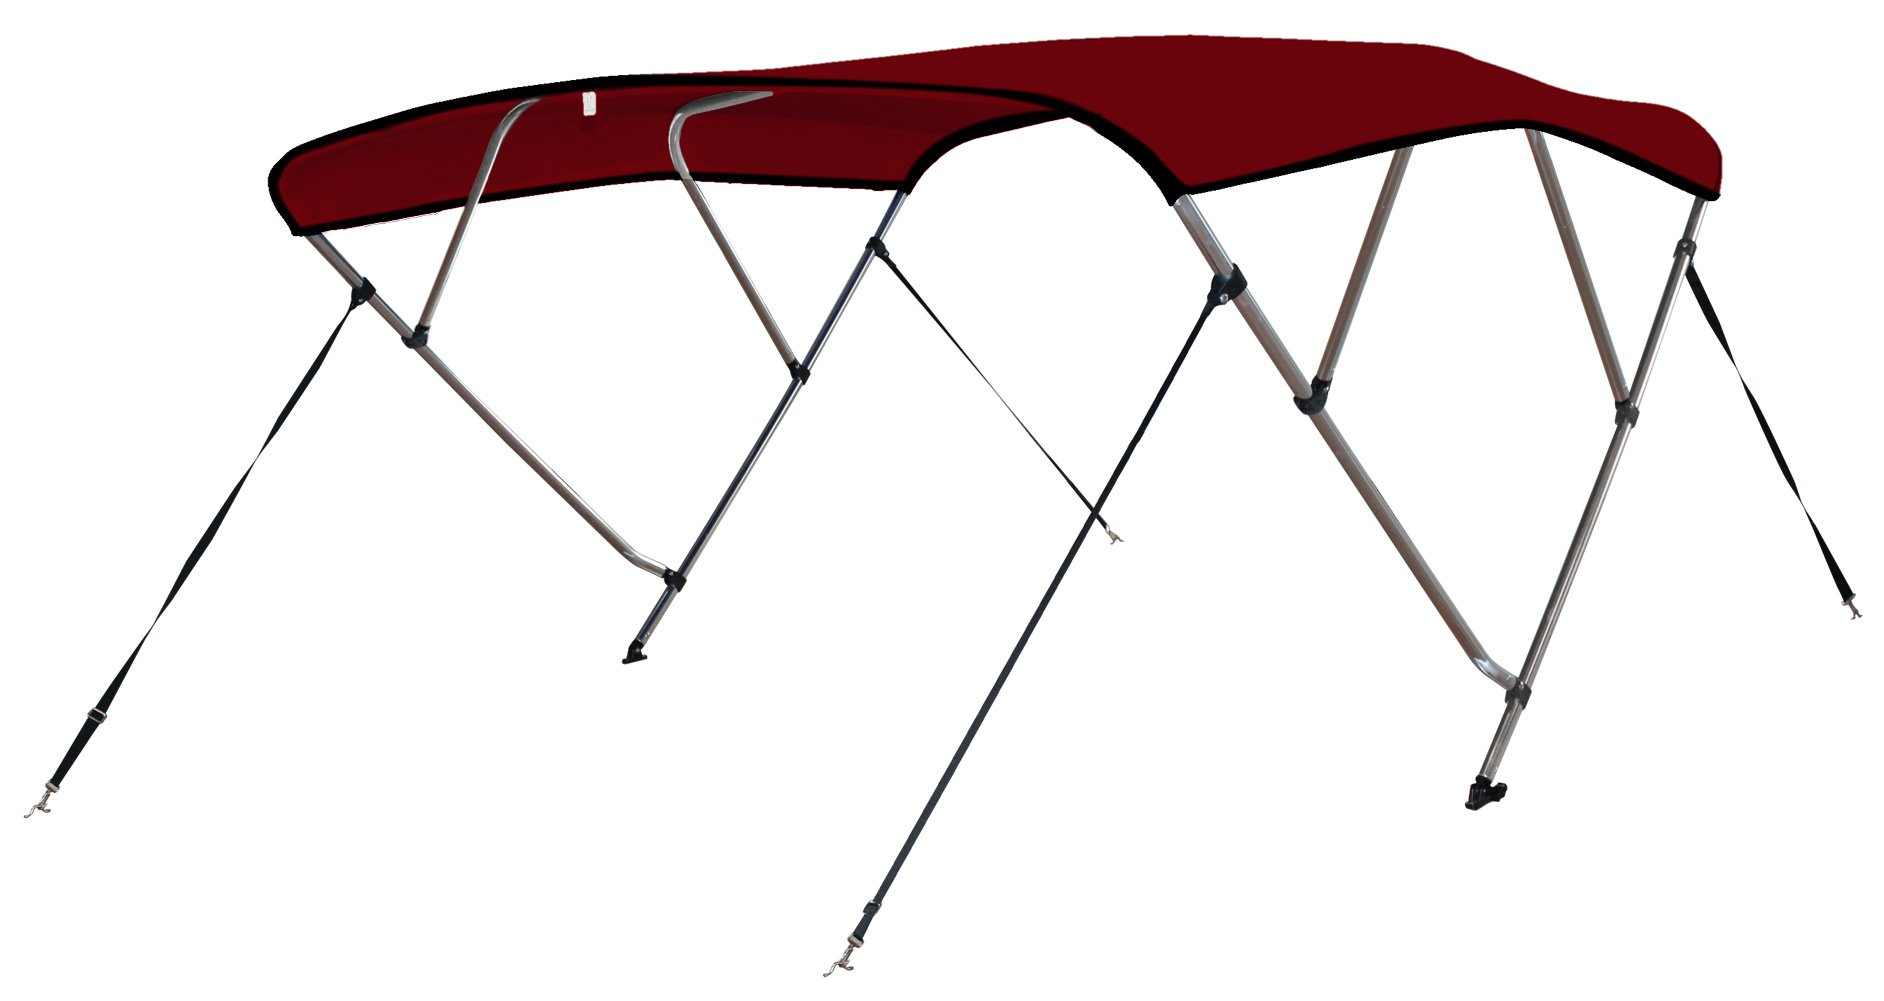 Leader Accessories 4 Bow Bimini Tops Boat Cover 4 Straps for Front and Rear Includes Hardwares with 1 Inch Aluminum Frame (Burgundy, 8'L x 54'' H x 54''-60'' W) by Leader Accessories